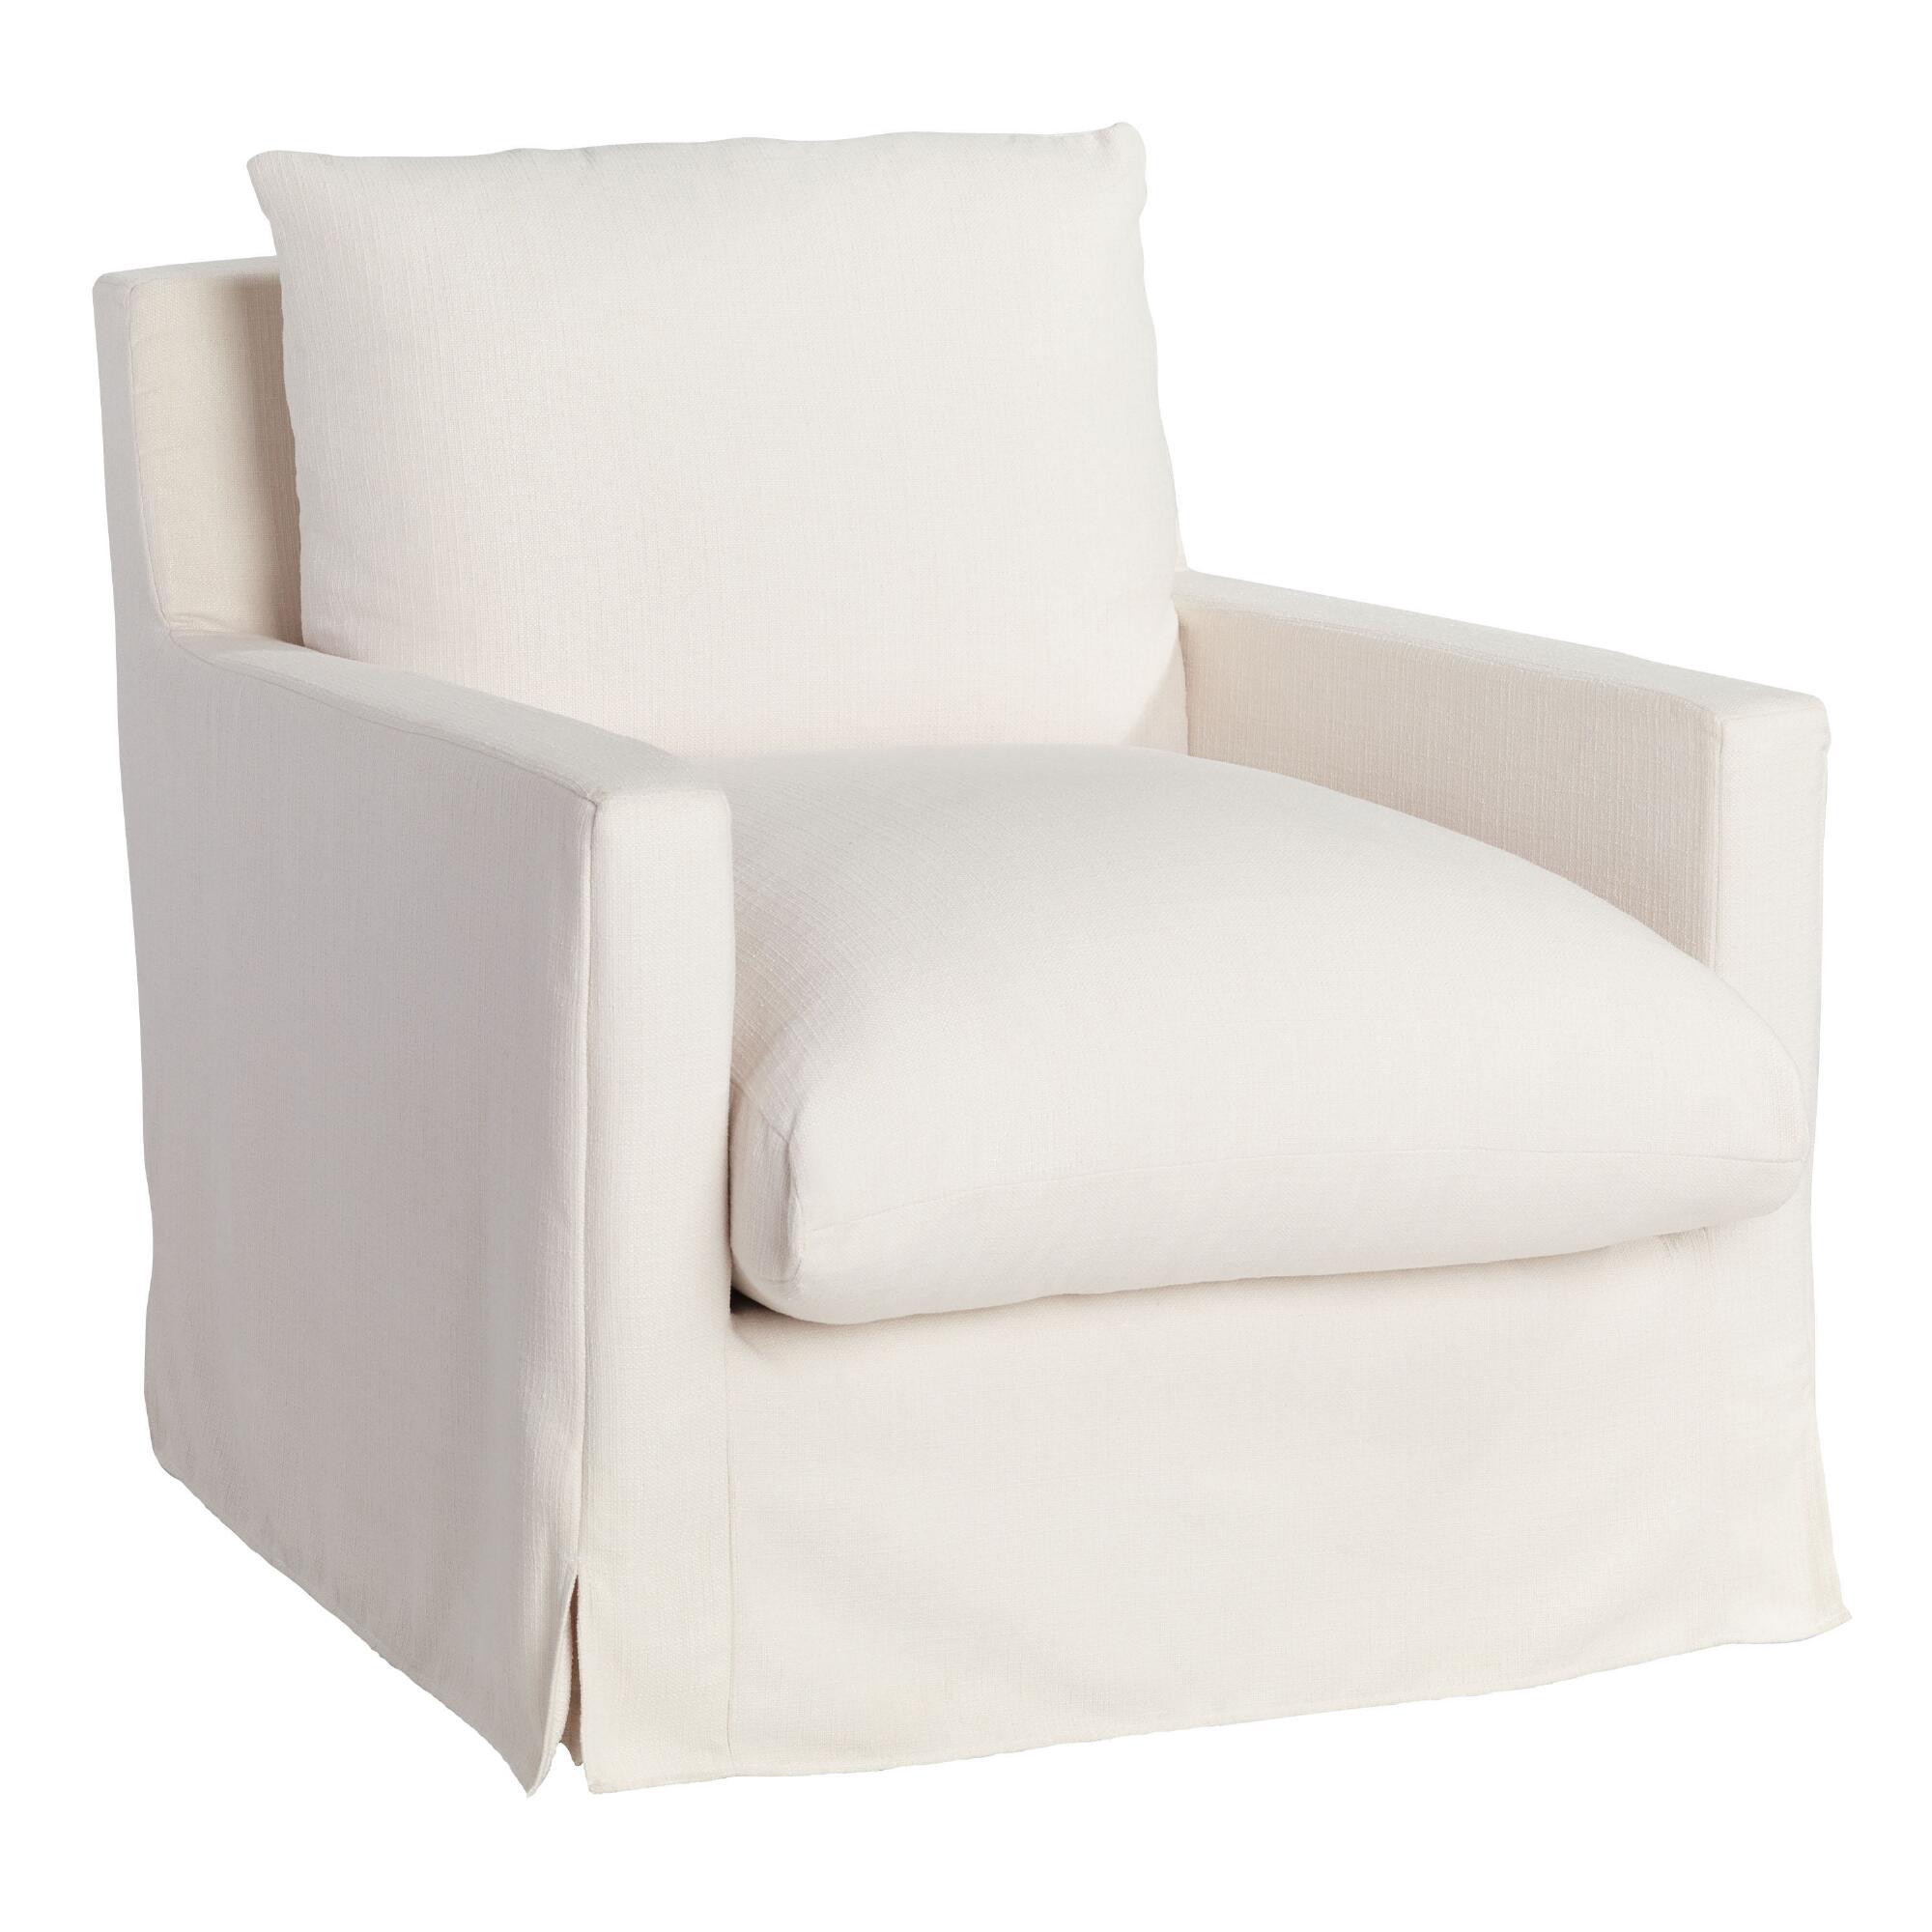 Brynn feathered filled ivory swivel arm chair